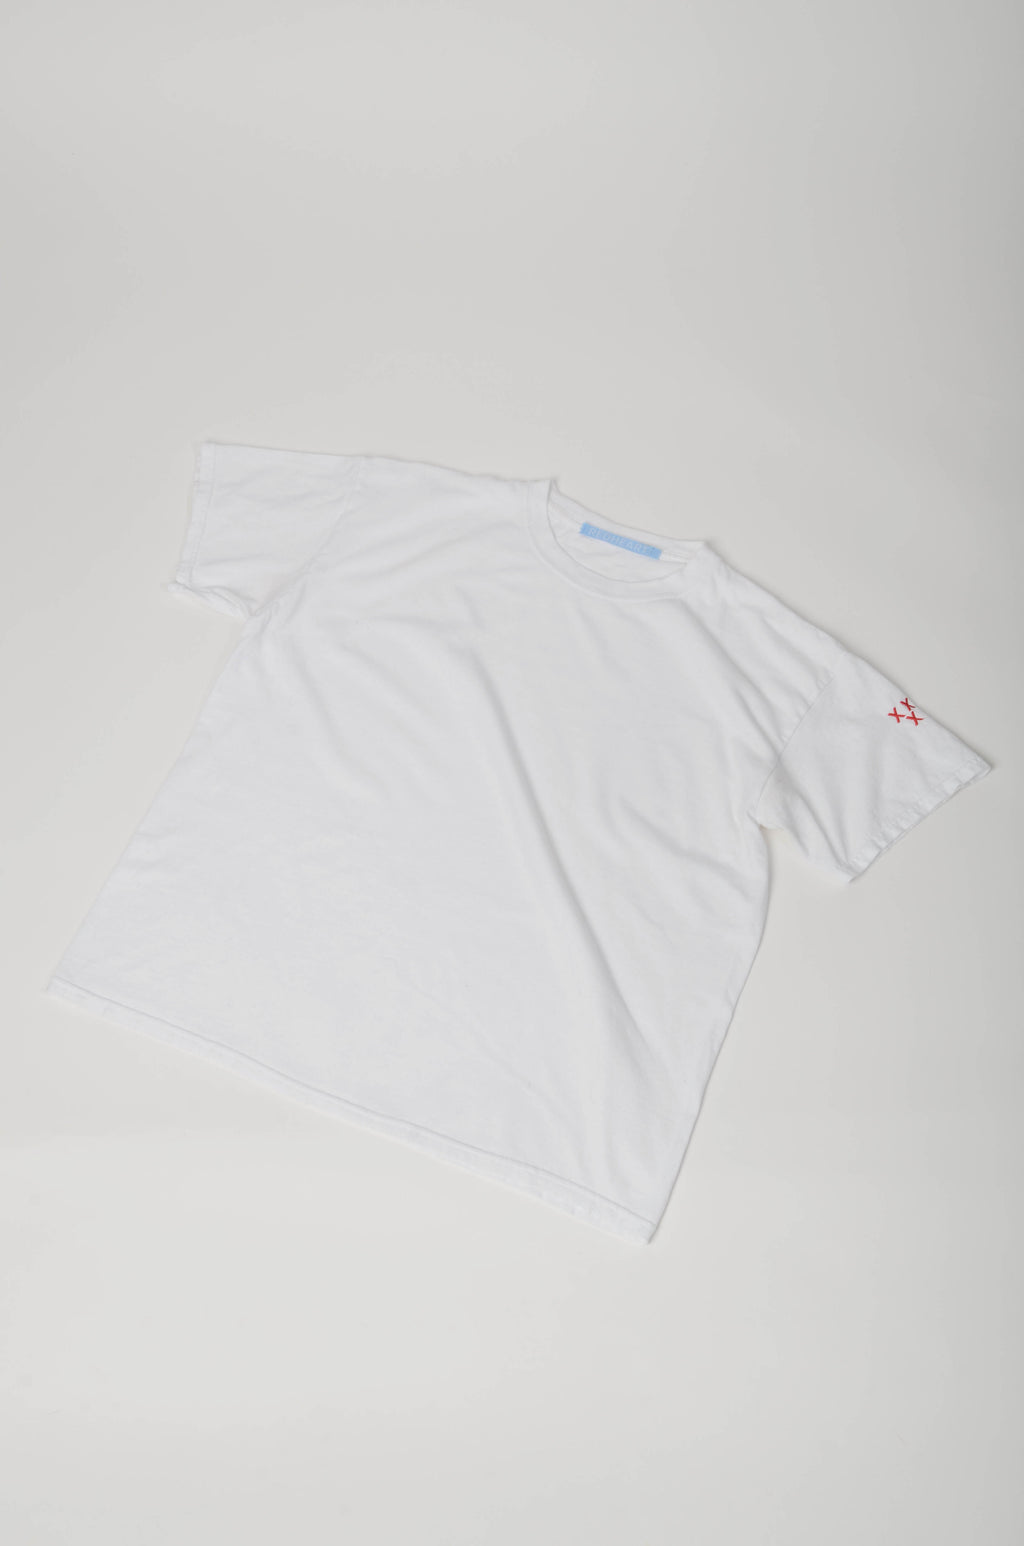 Embroidered Three Crosses T-Shirt (Sleeve)